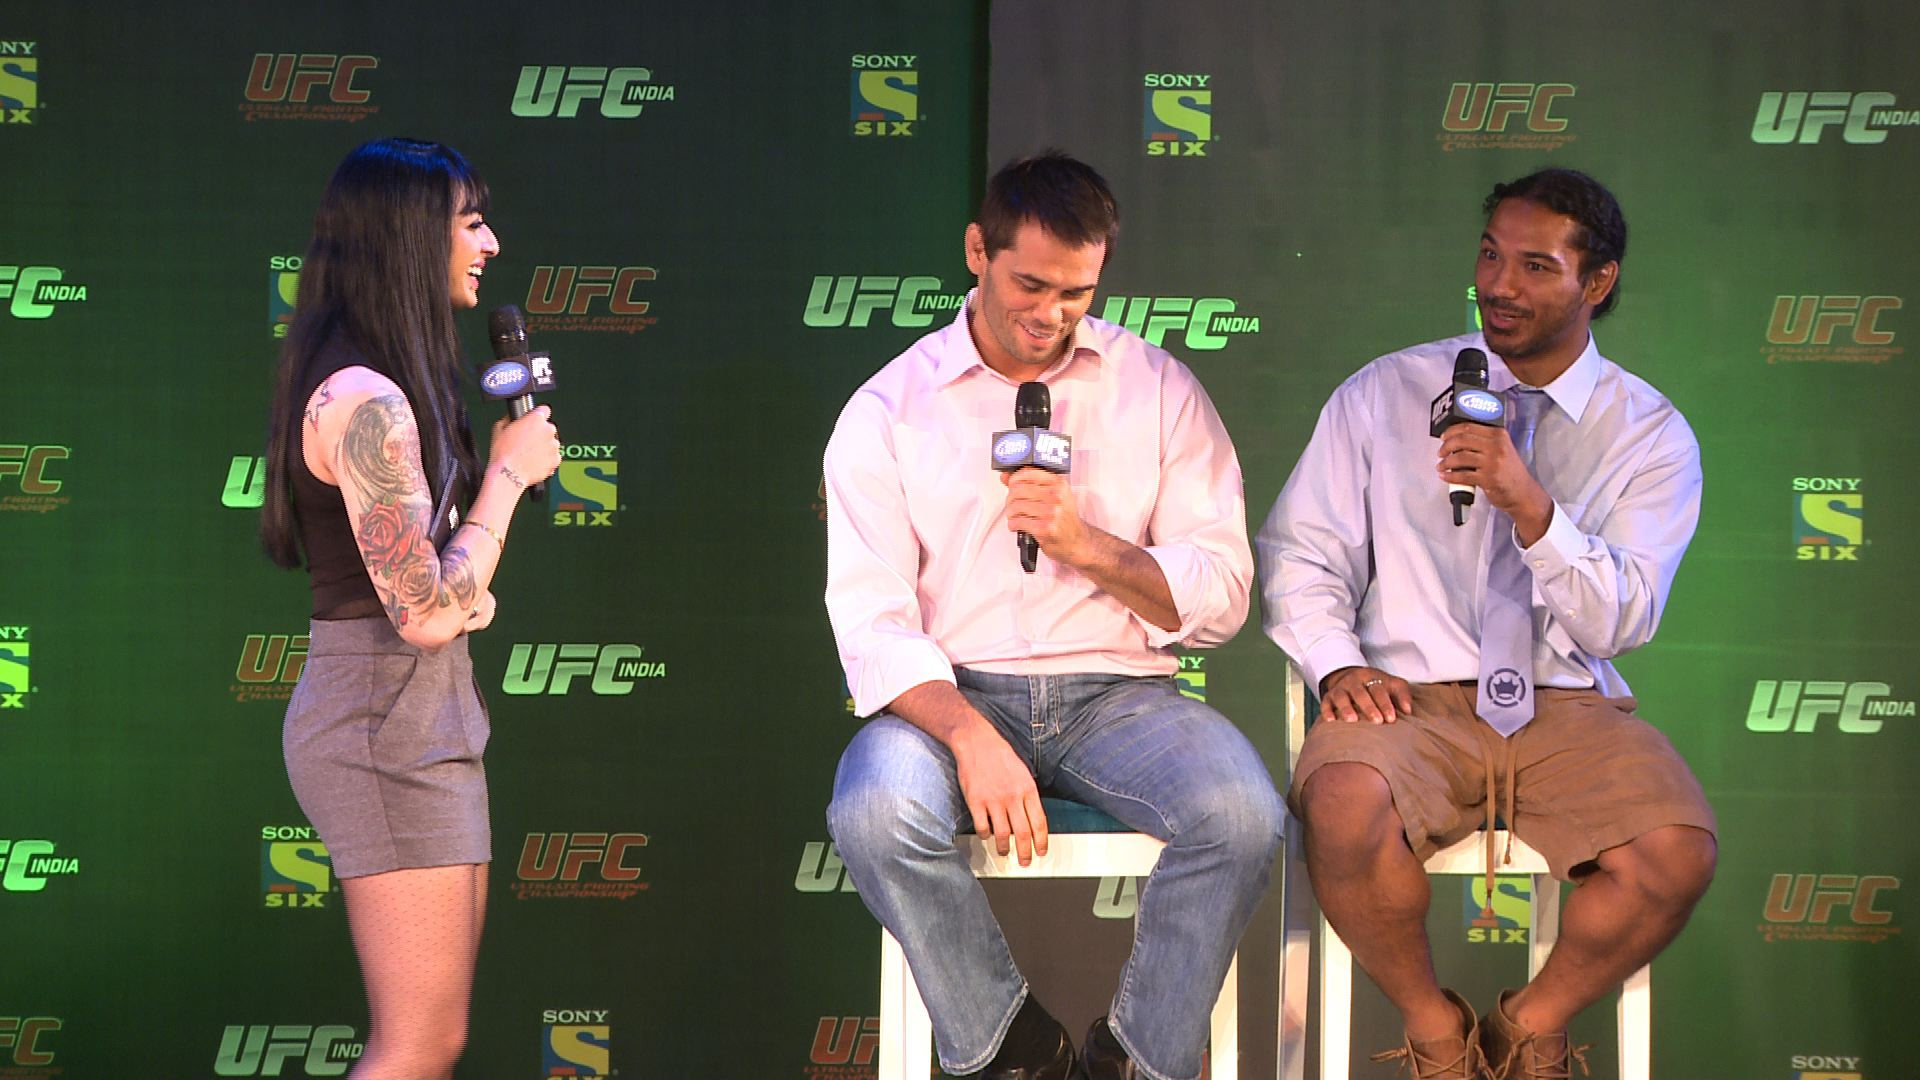 Projecting the future: Key takeaways for UFC from the WWE live event in India -